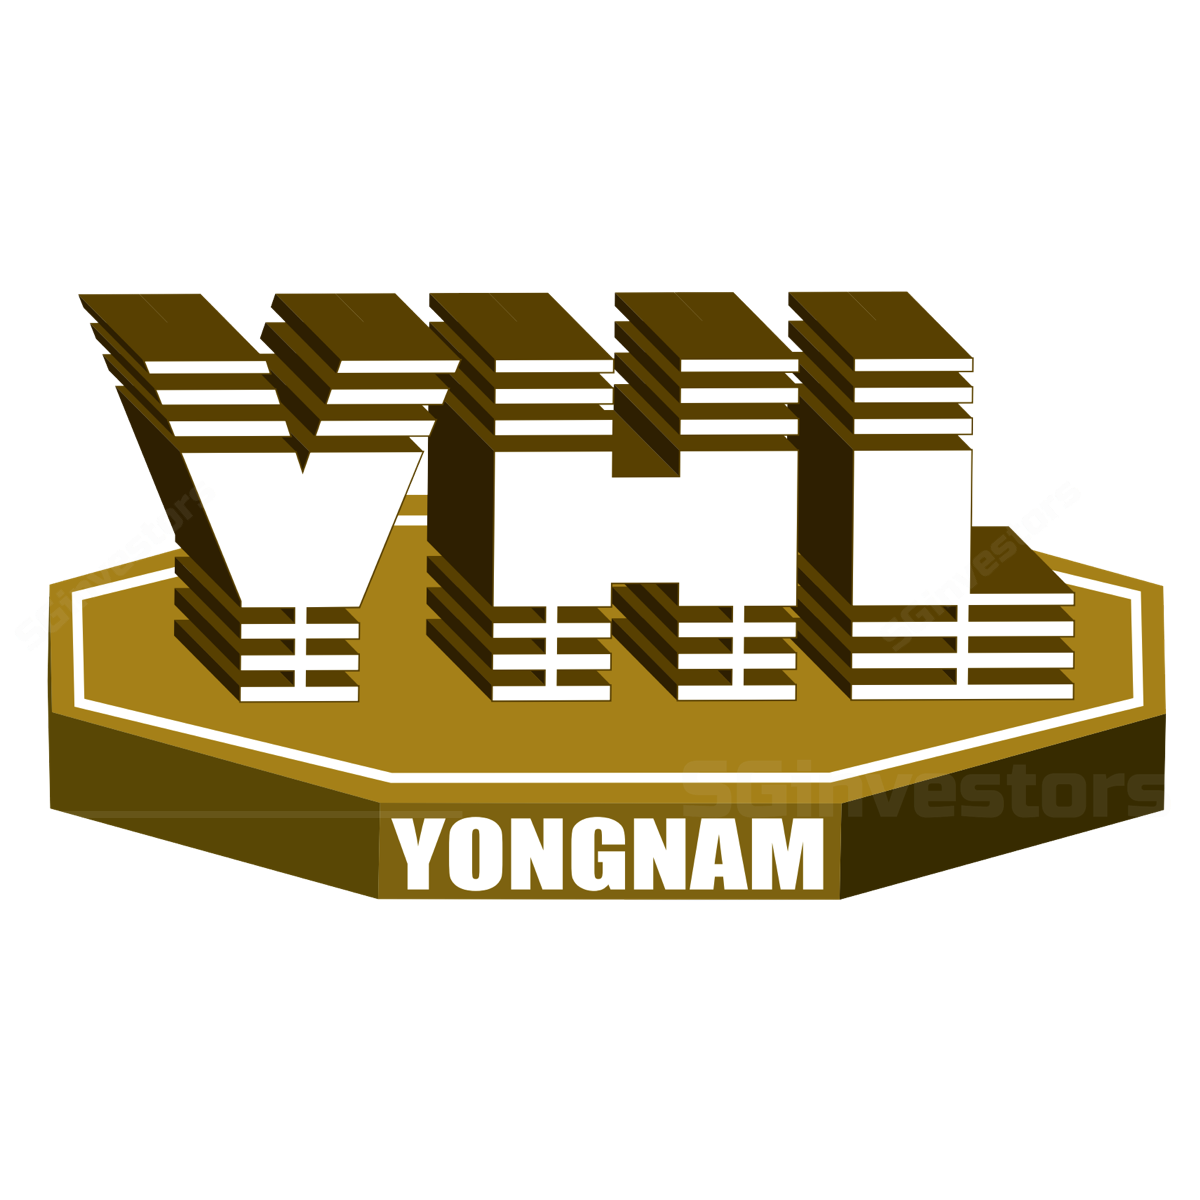 Yongnam Holdings - CGS-CIMB 2018-05-23: Major North-south Corridor Contract Won